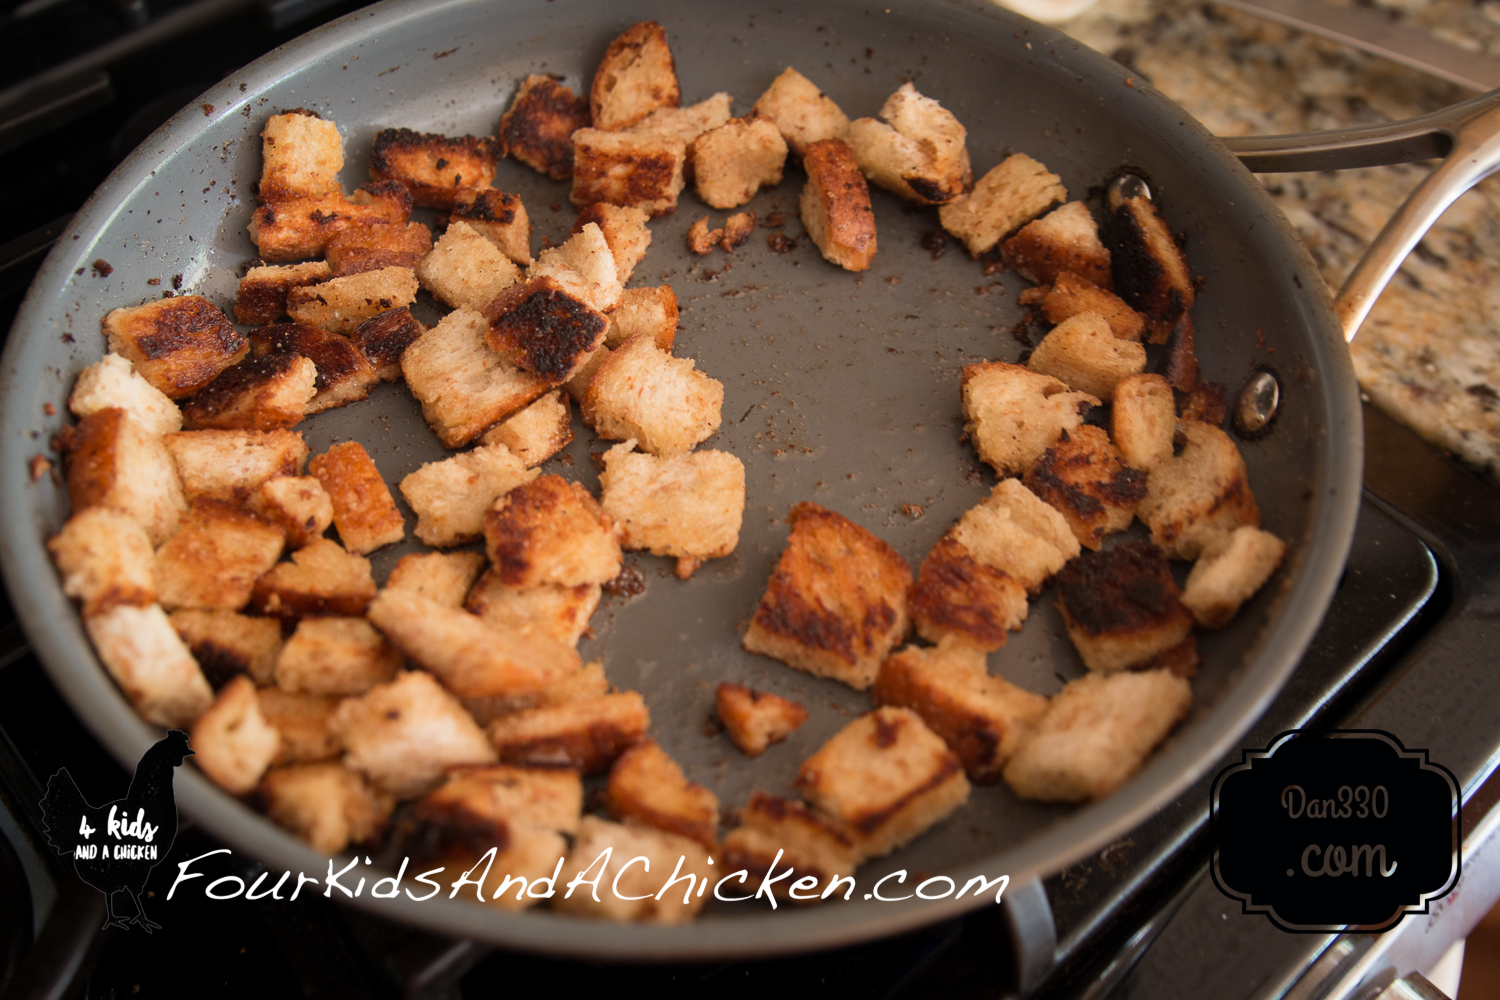 Homemade croutons for Baked Zucchini Casserole